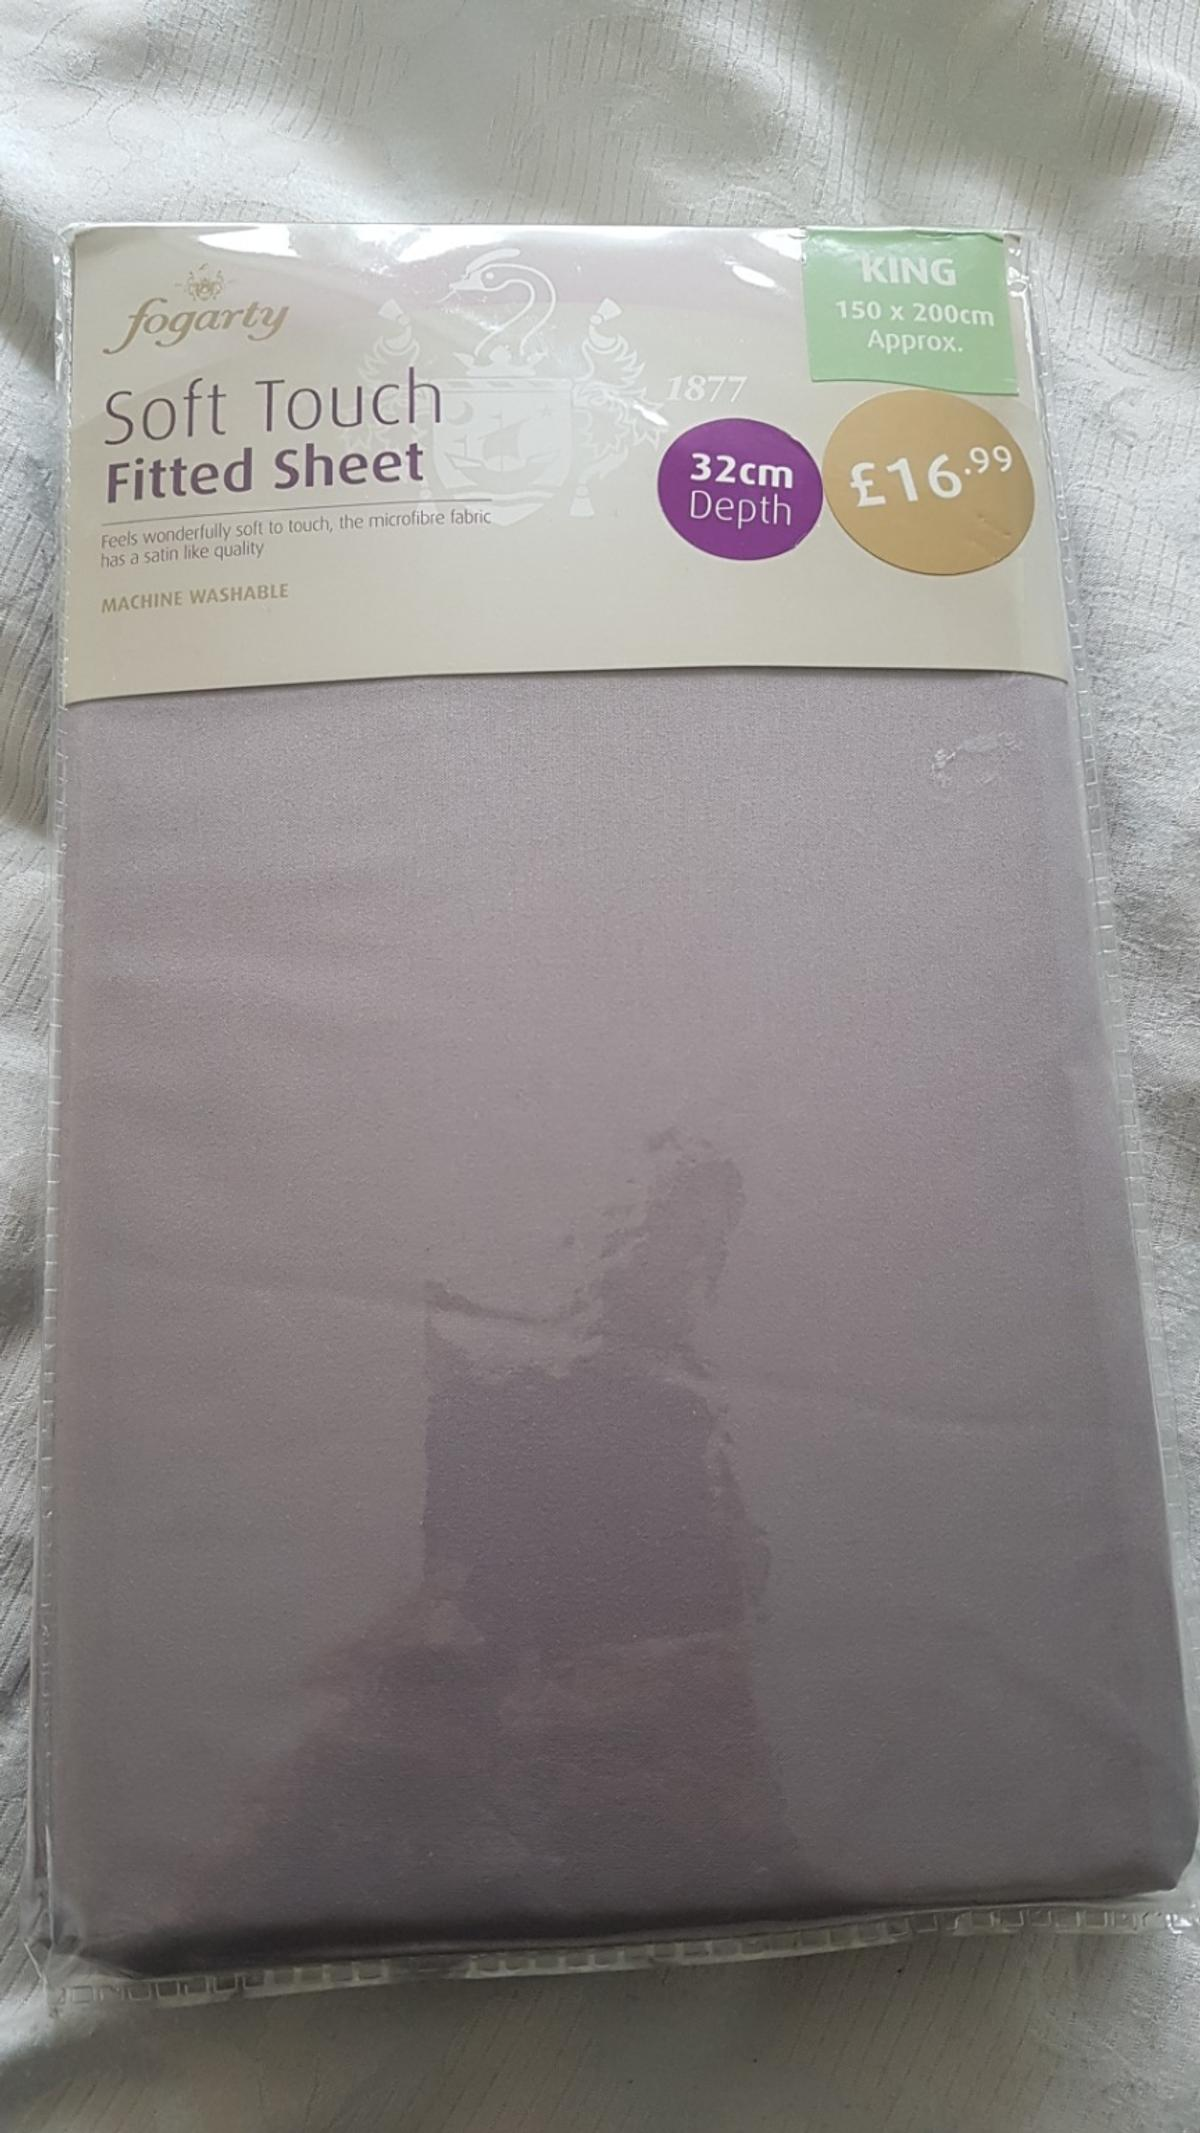 king size fitted sheet brand new also 32cm in depth, grey colour